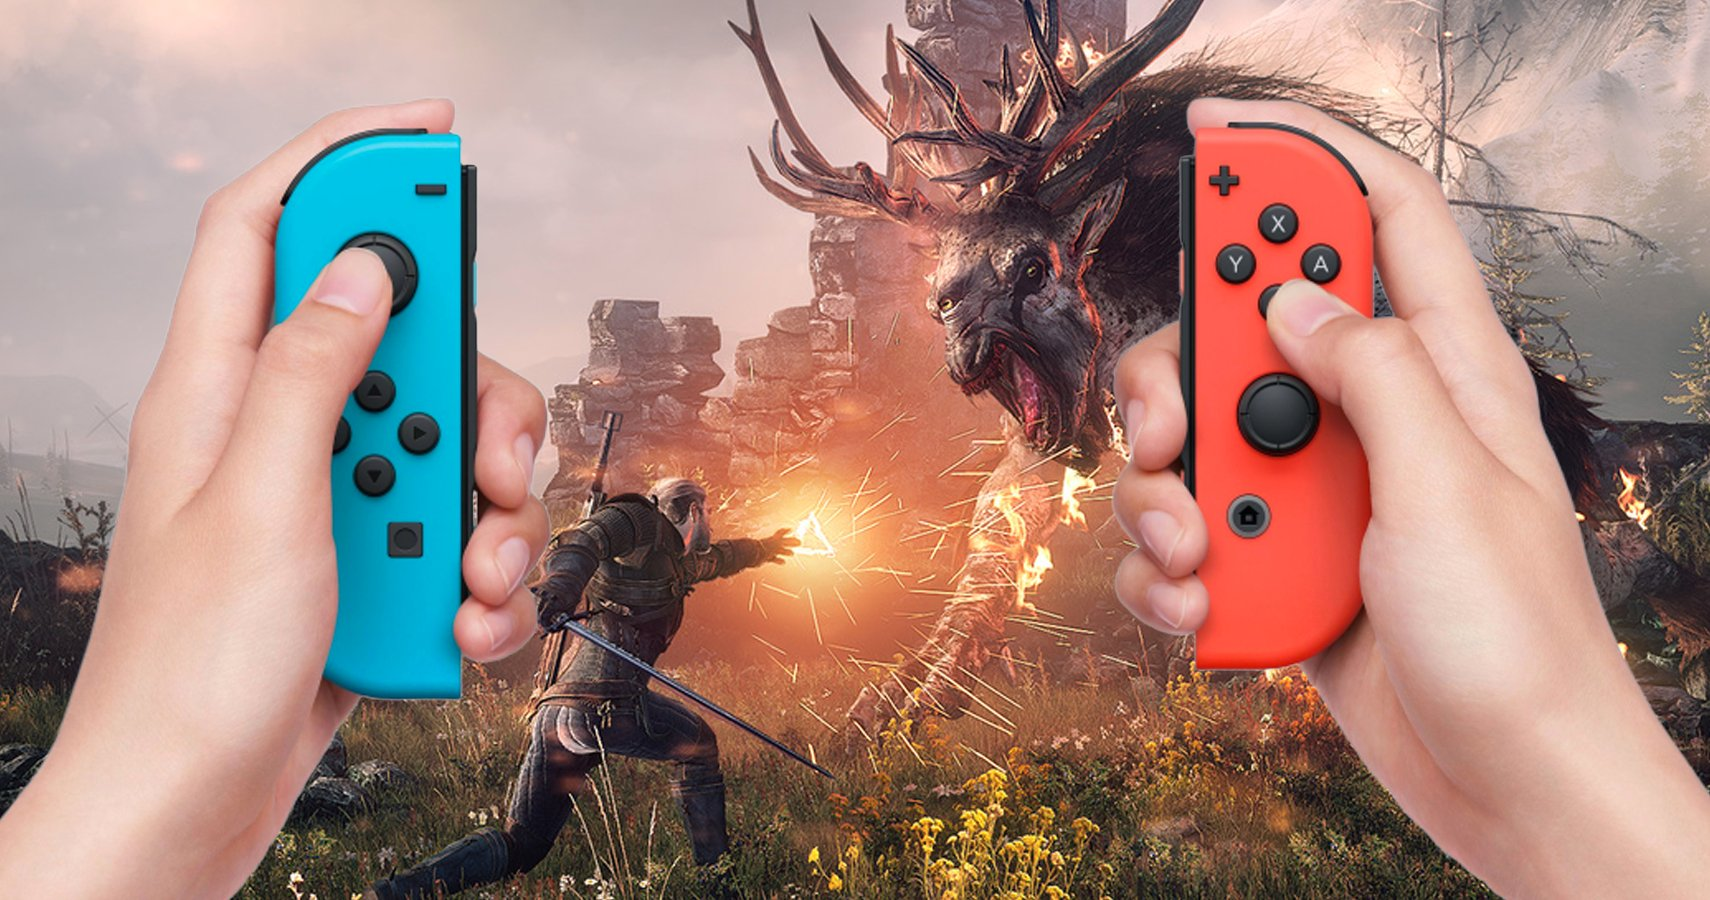 Director de God of War expresa su emoción por jugar The Witcher en el Switch